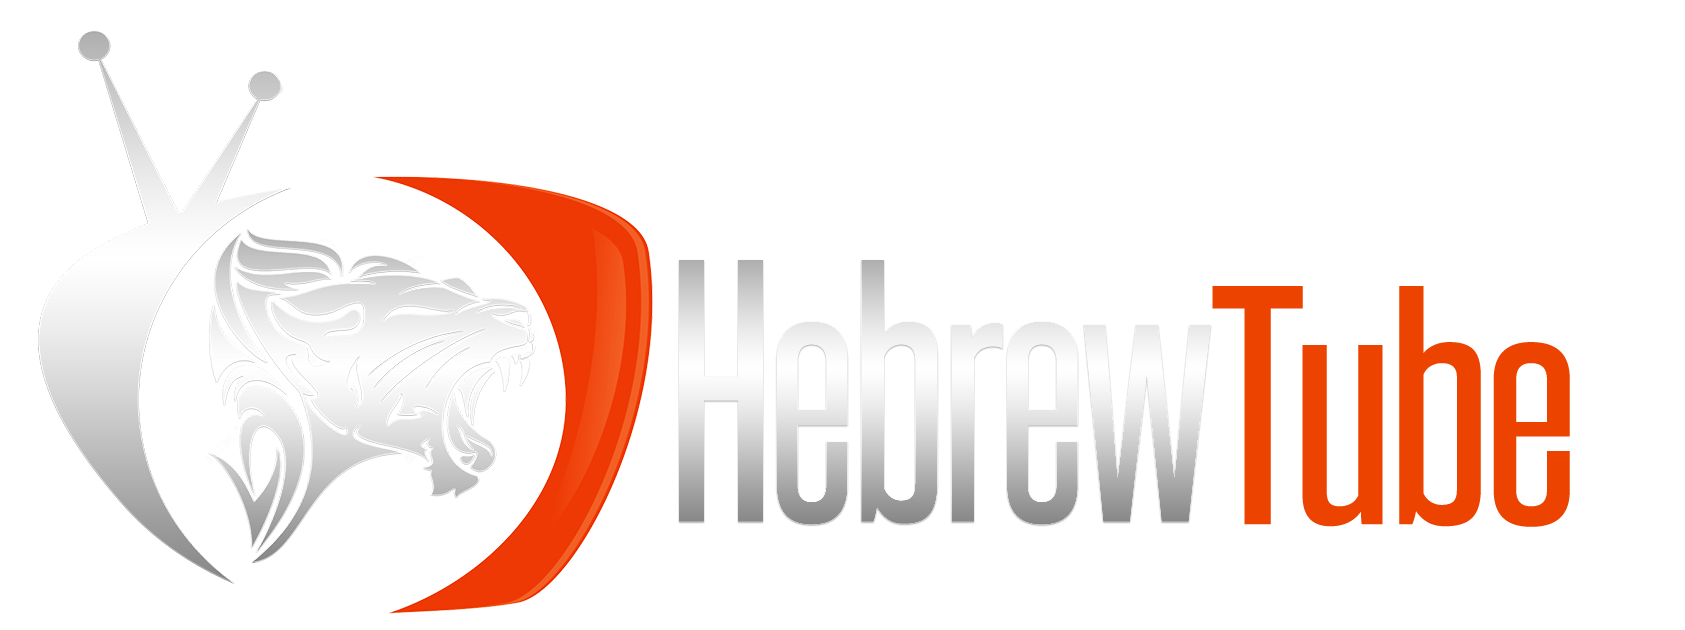 Hebrew Israelite TV